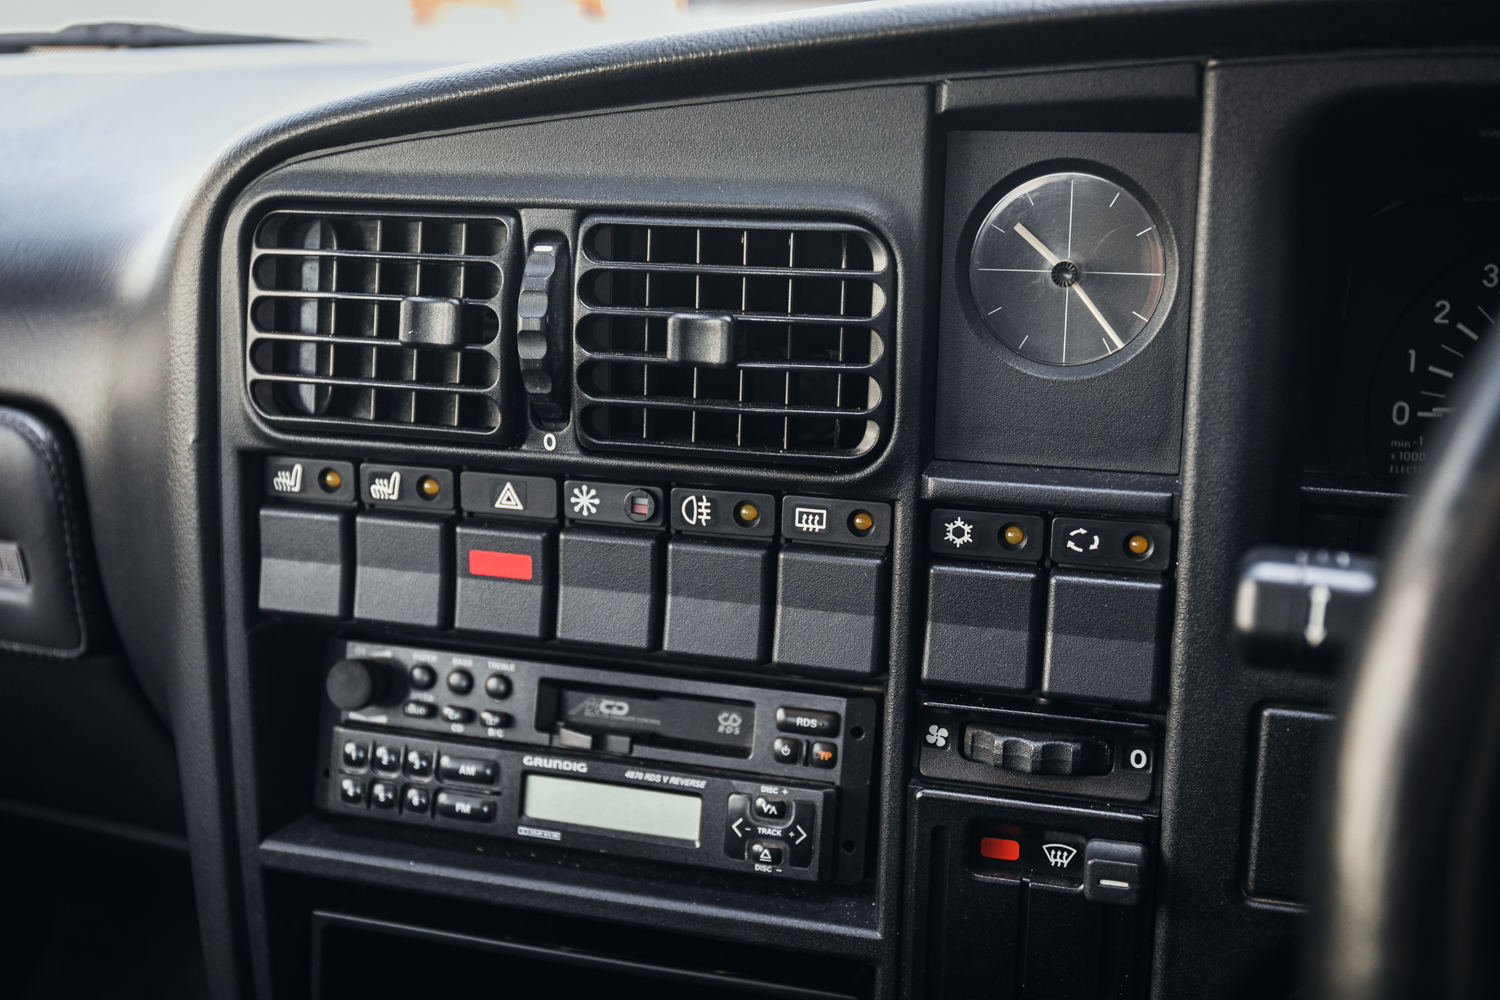 1992 Vauxhall Lotus Carlton Dash Buttons and Switches